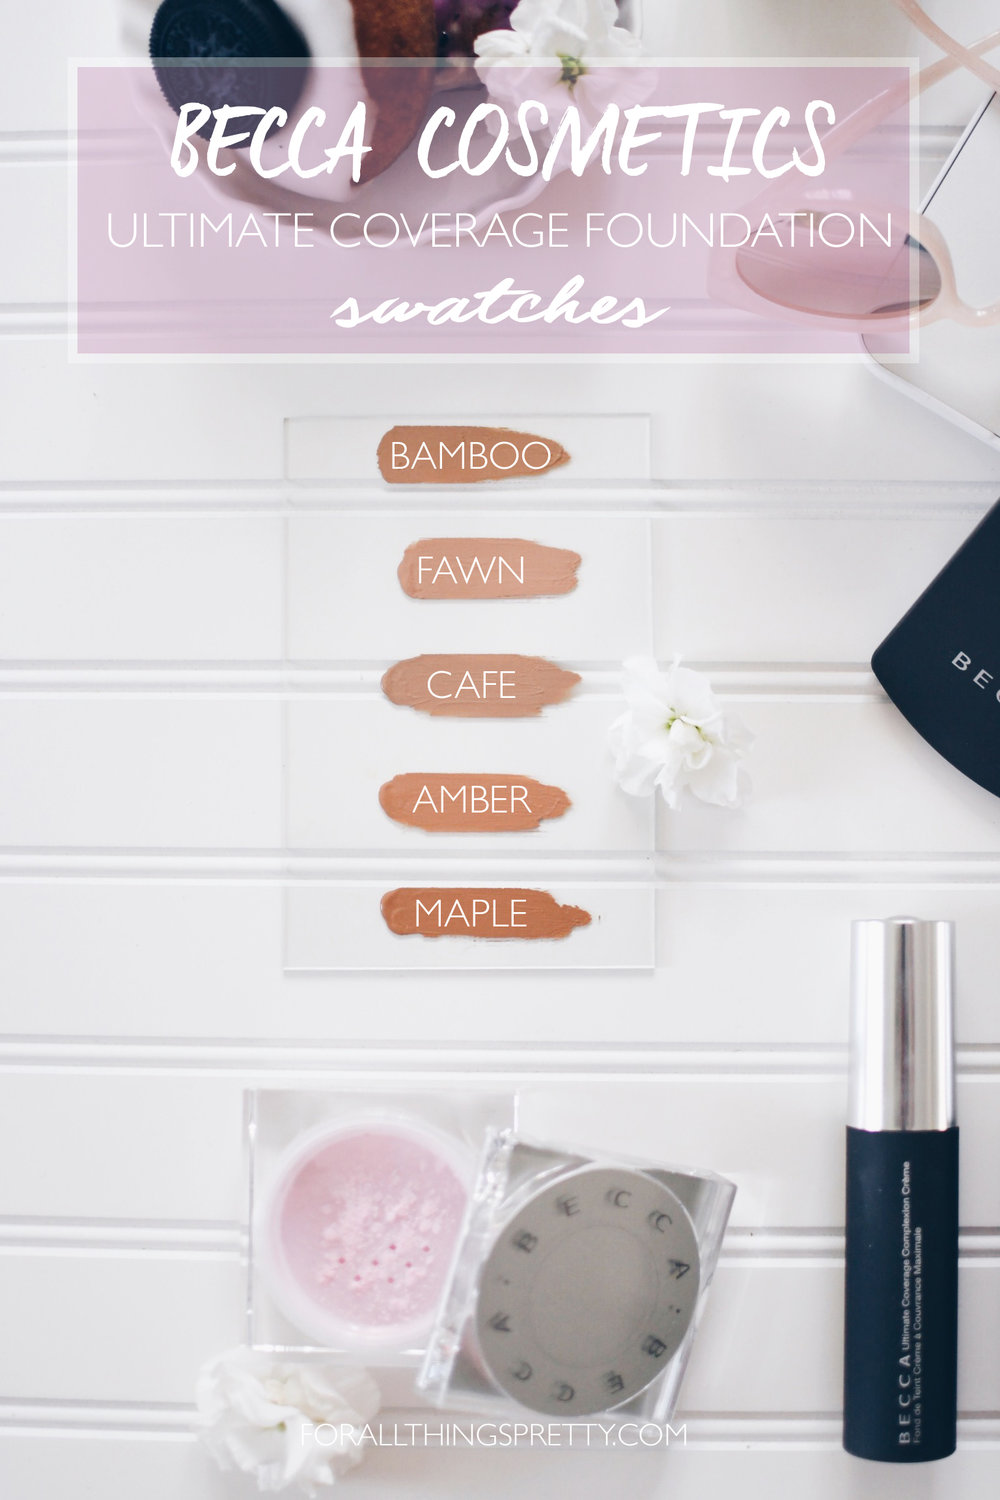 Becca Cosmetics Ultimate Coverage Foundation Swatches